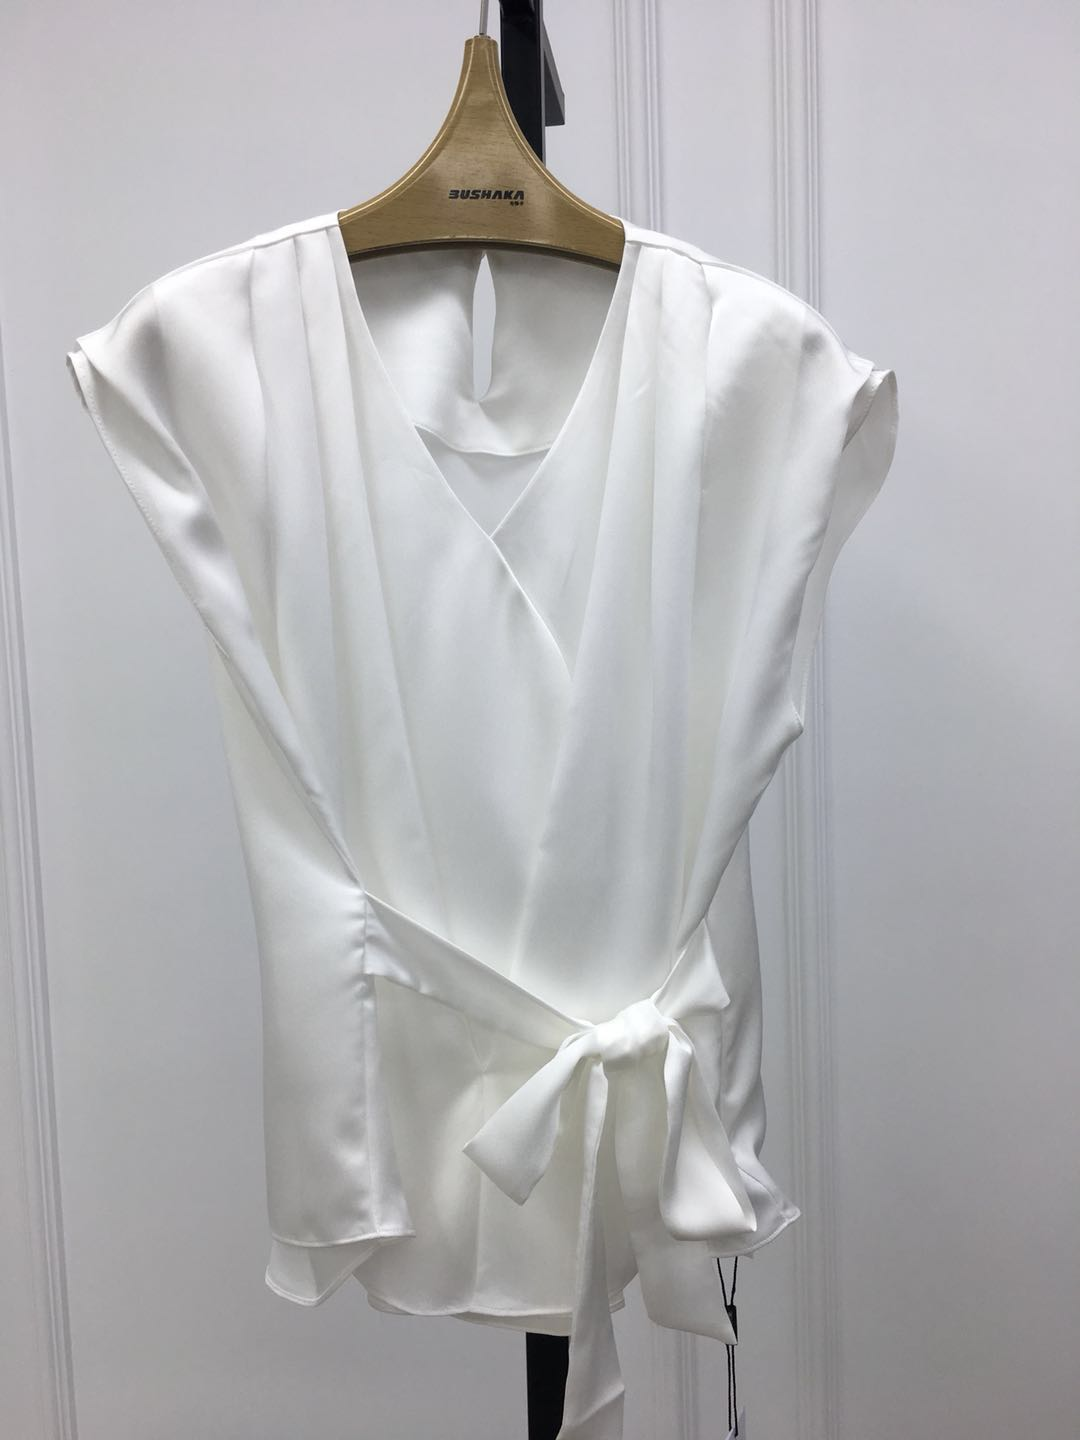 [haoxuan light luxury] new style fashionable V-neck waistband solid color top in summer 2020 zz20851